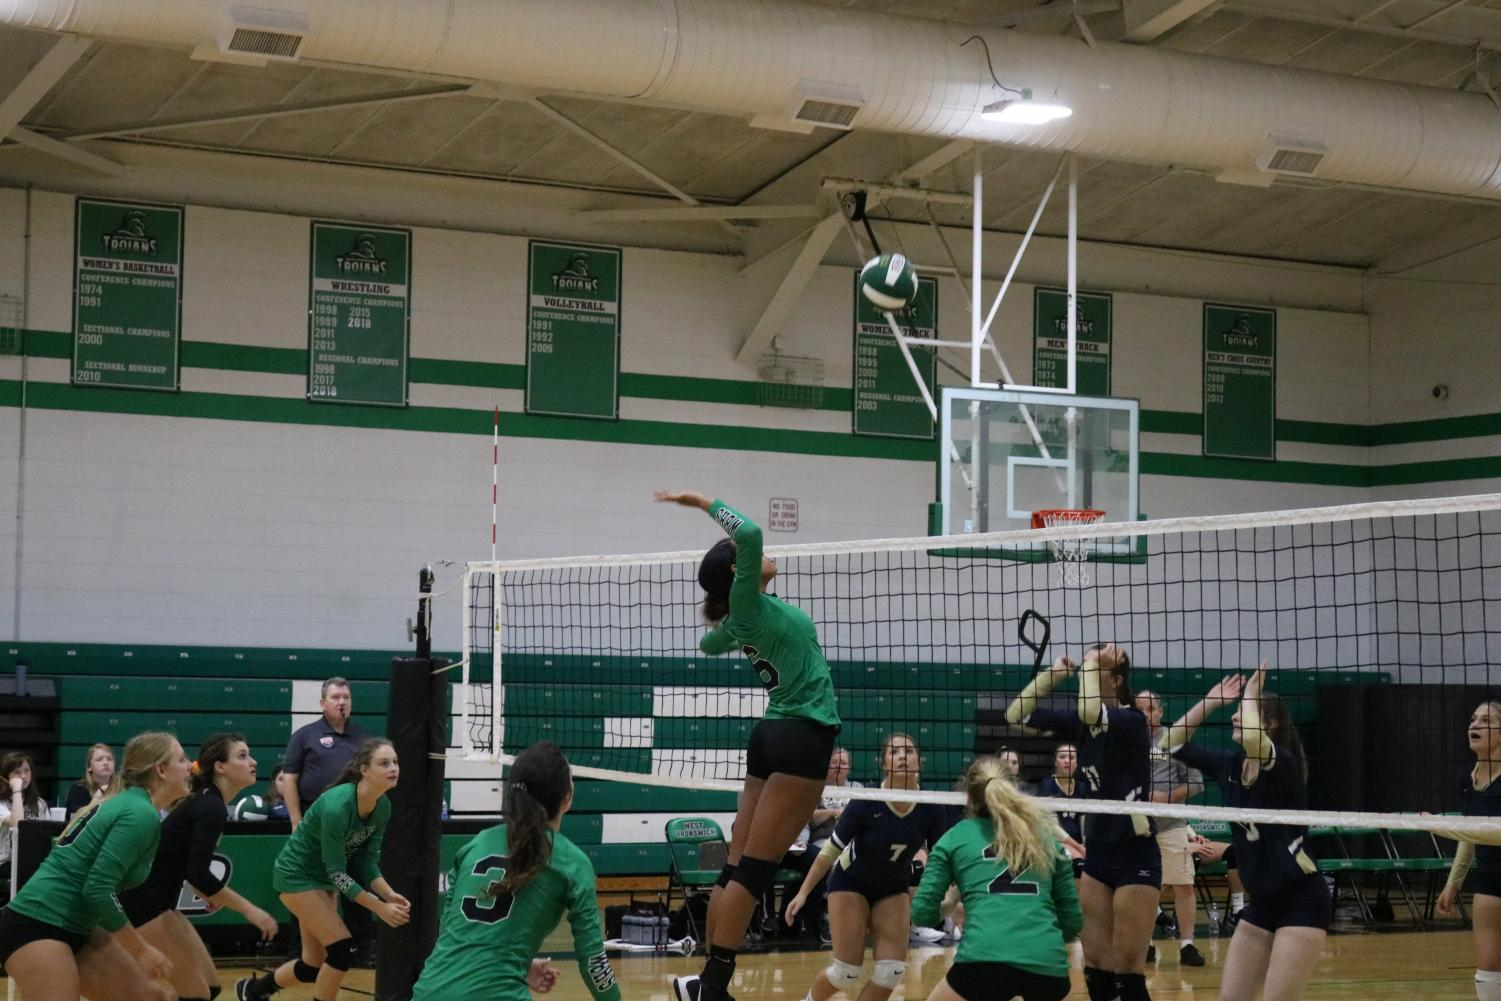 Kayden+Cupid%2C+a+freshman+on+the+team%2C+jumping+up+to+hit+the+ball.